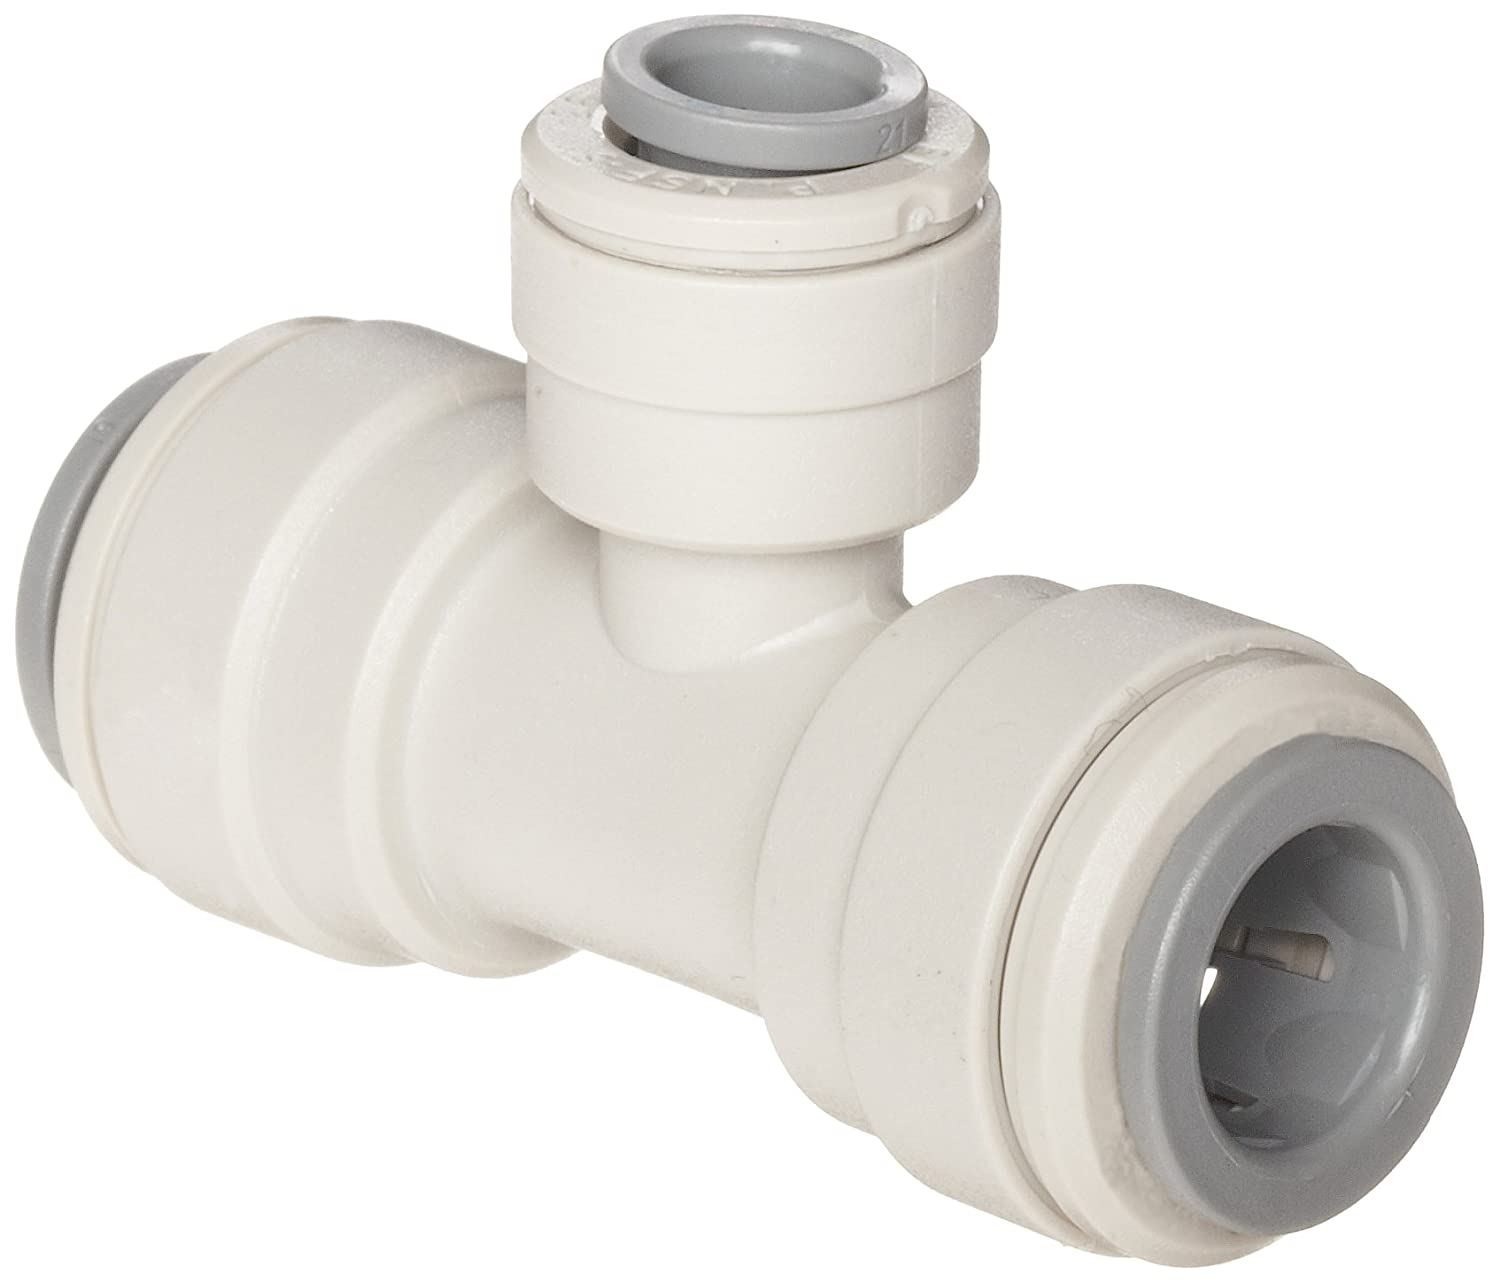 John Guest Acetal Copolymer Tube Fitting, Reducing Branch Tee, 3/8